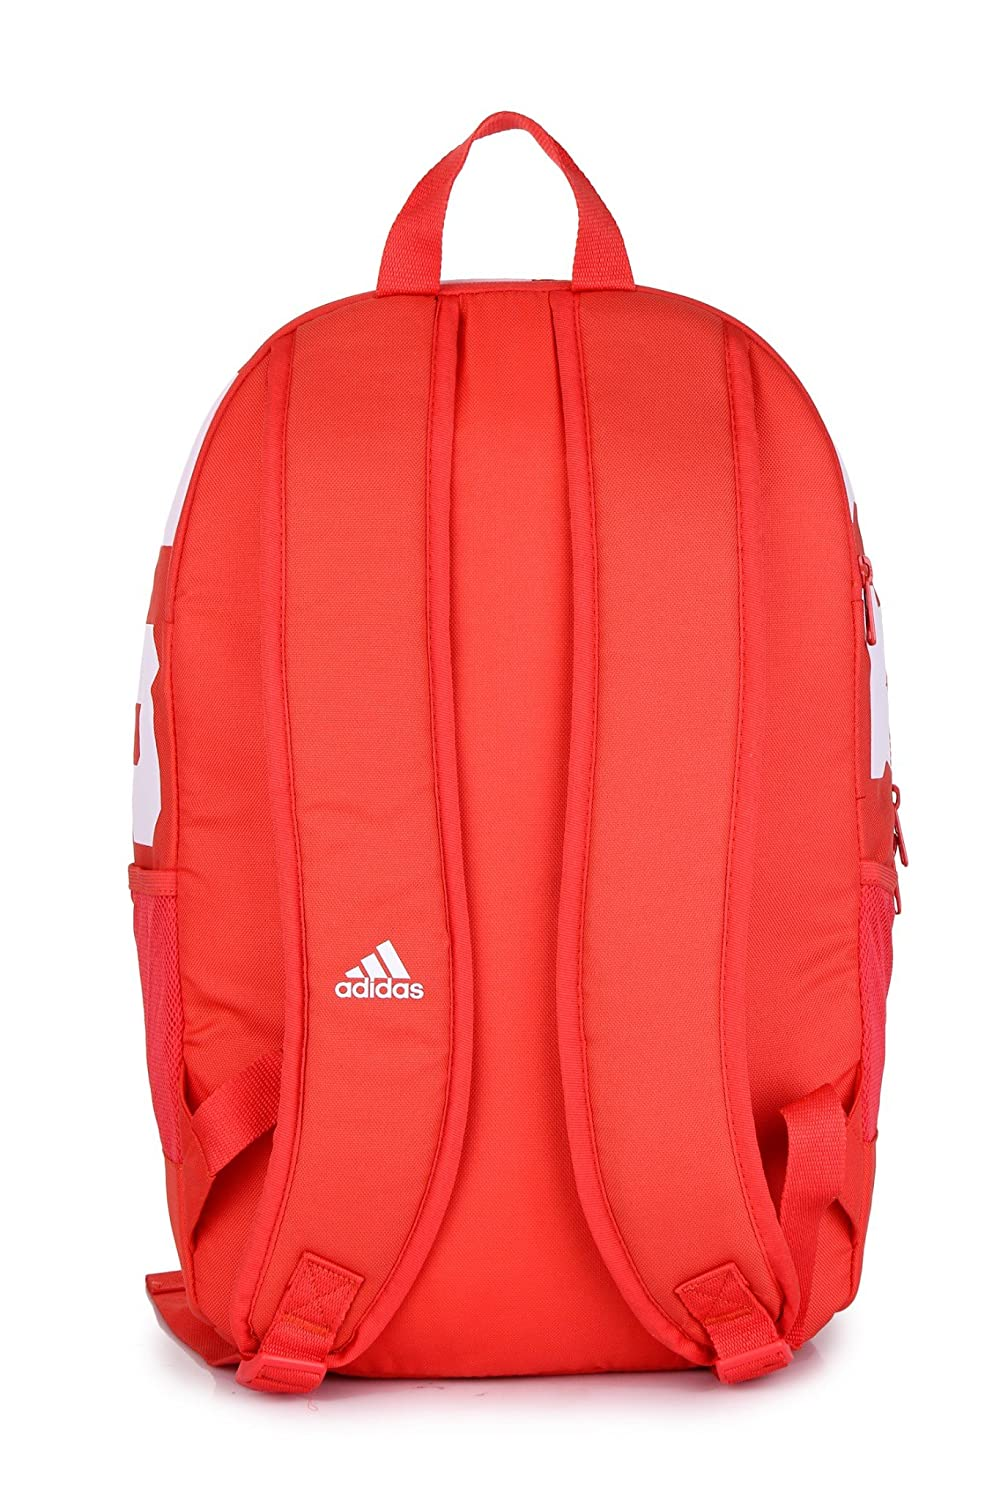 Buy adidas backpack amazon > OFF44% Discounted